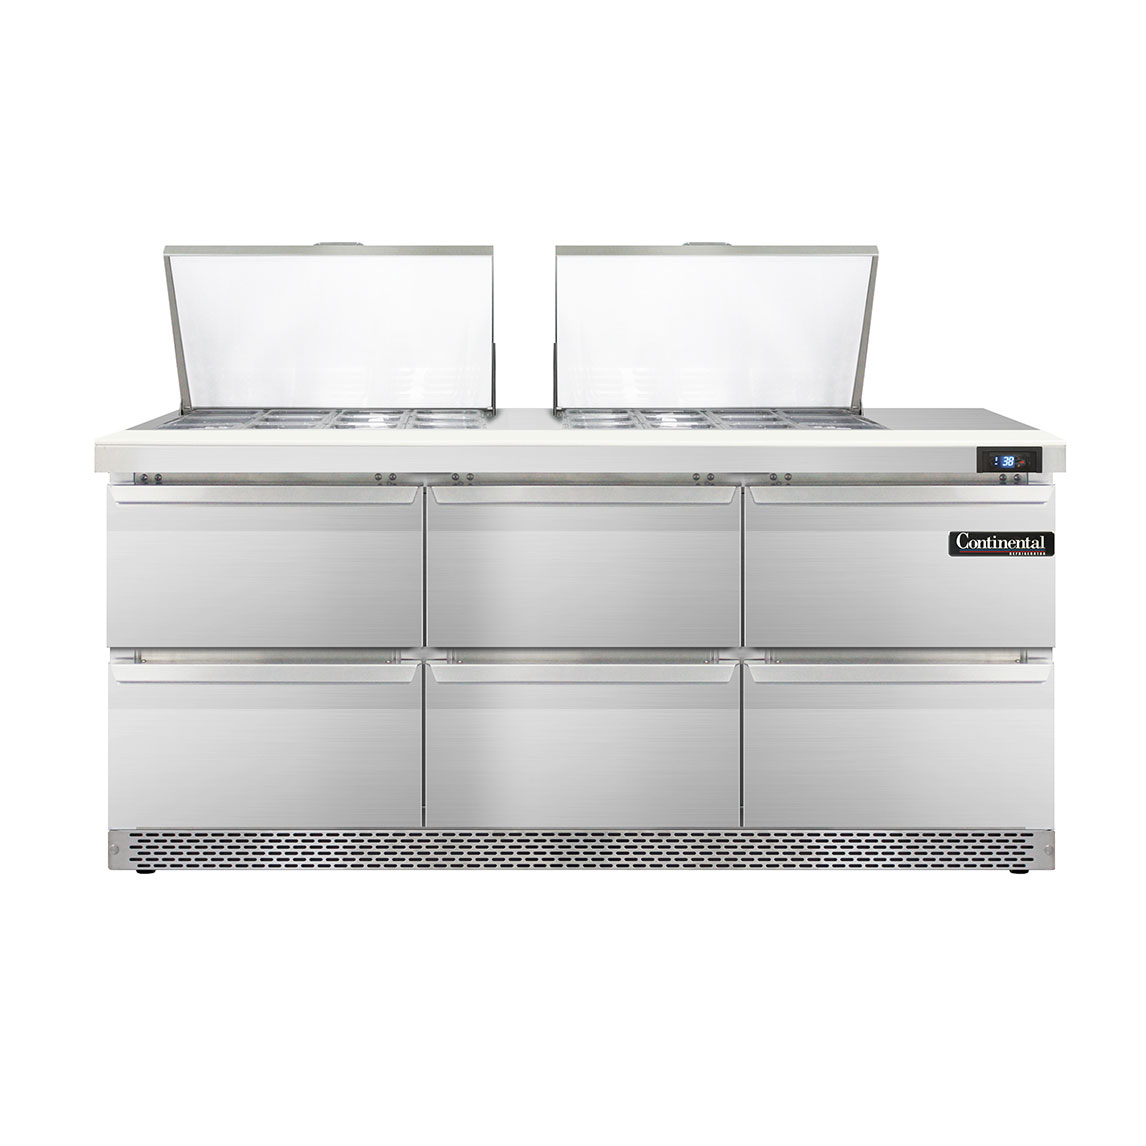 Continental Refrigerator DL72-24M-FB-D refrigerated counter, mega top sandwich / salad unit